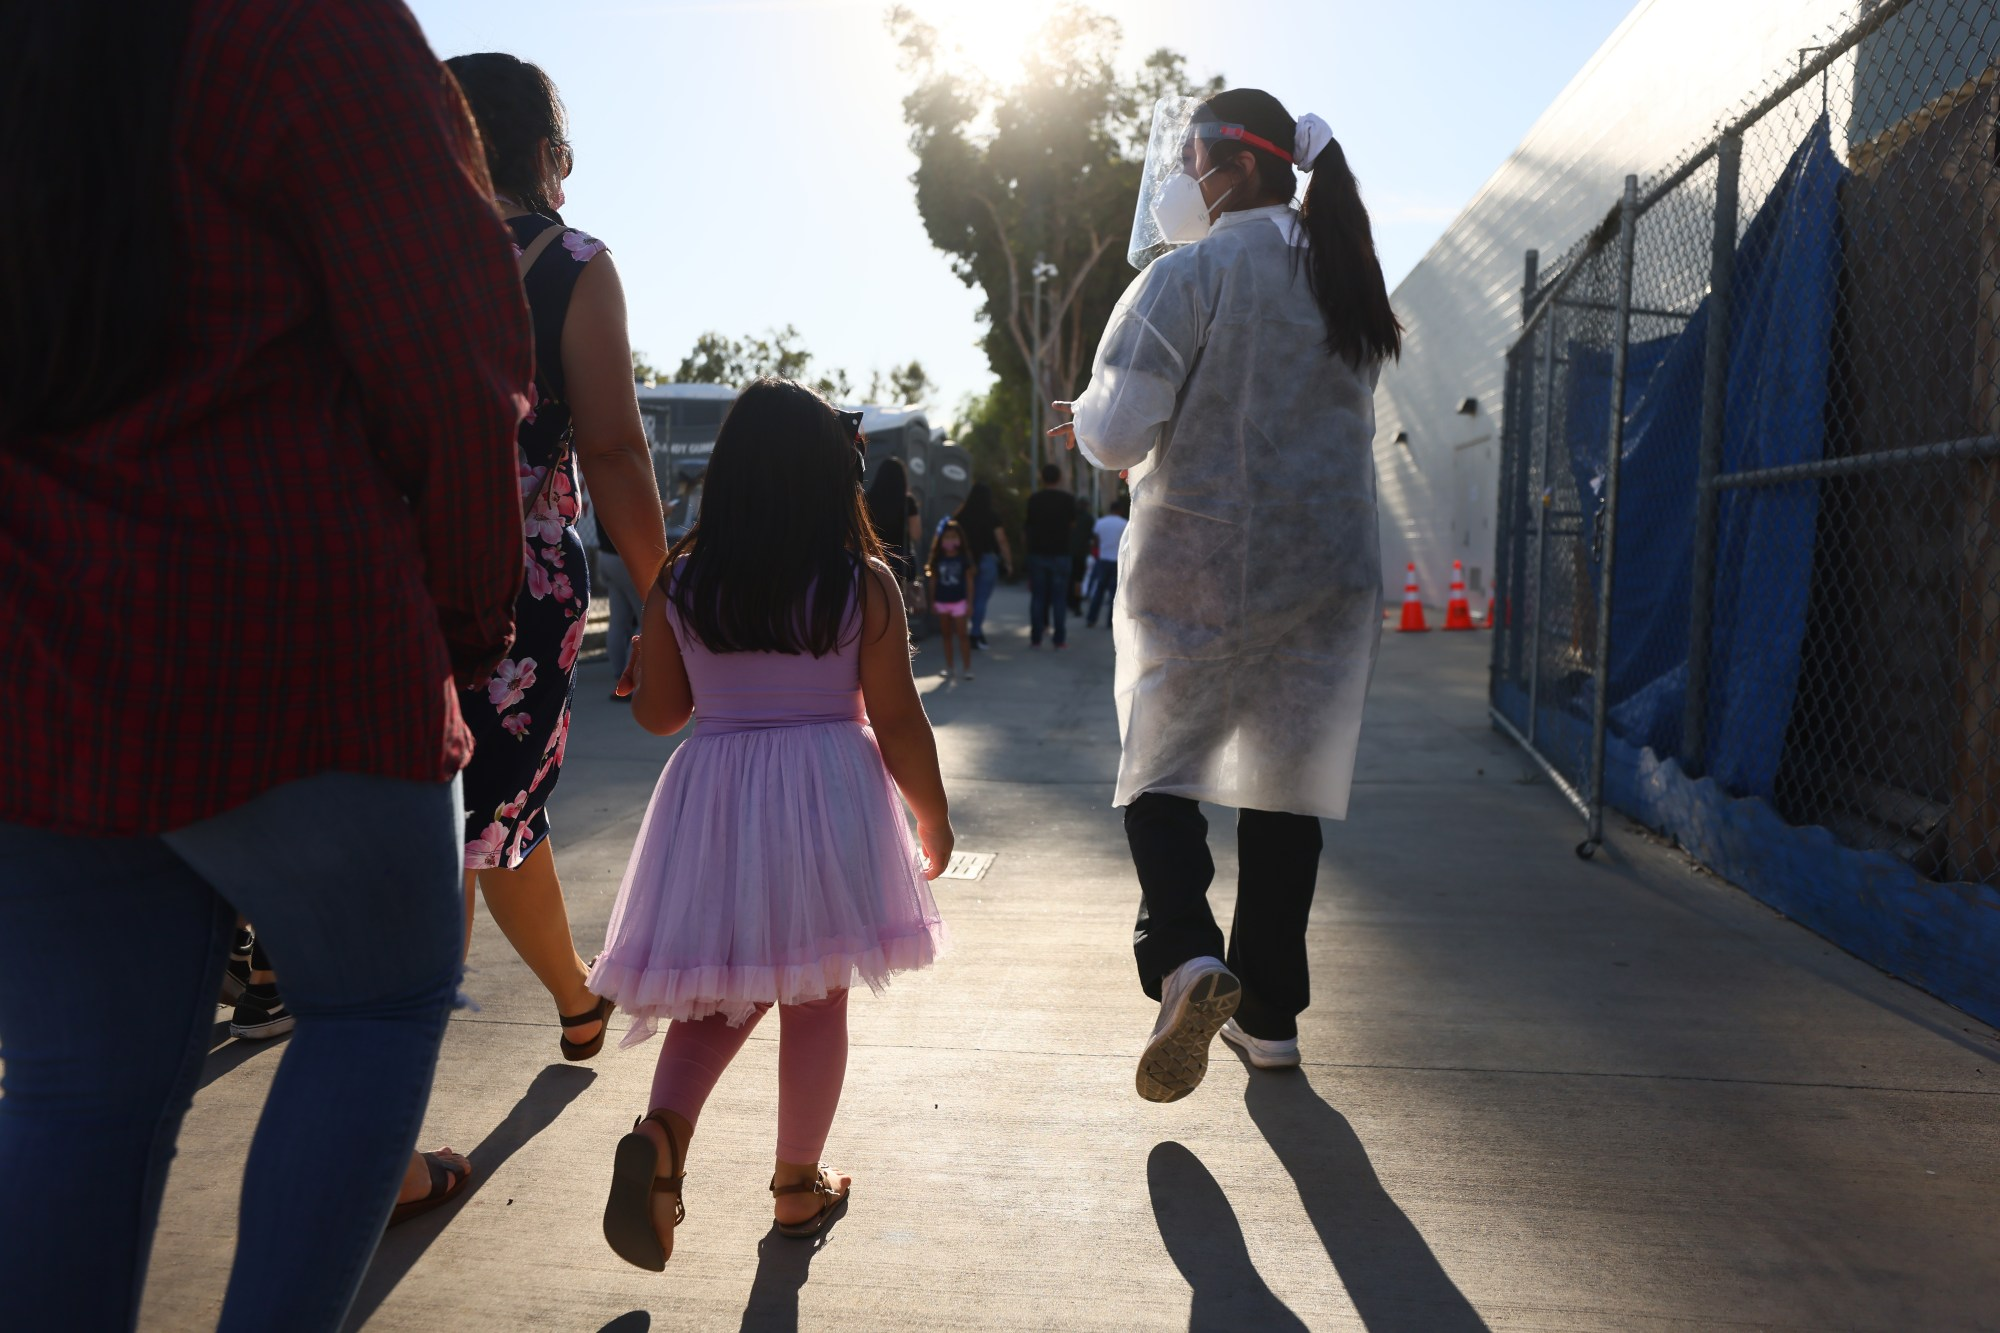 A USC research team member walks with a family after recruiting them to participate in a rapid antigen testing program at a walk-up COVID-19 testing site on Dec. 2, 2020, in San Fernando. (Mario Tama/Getty Images)